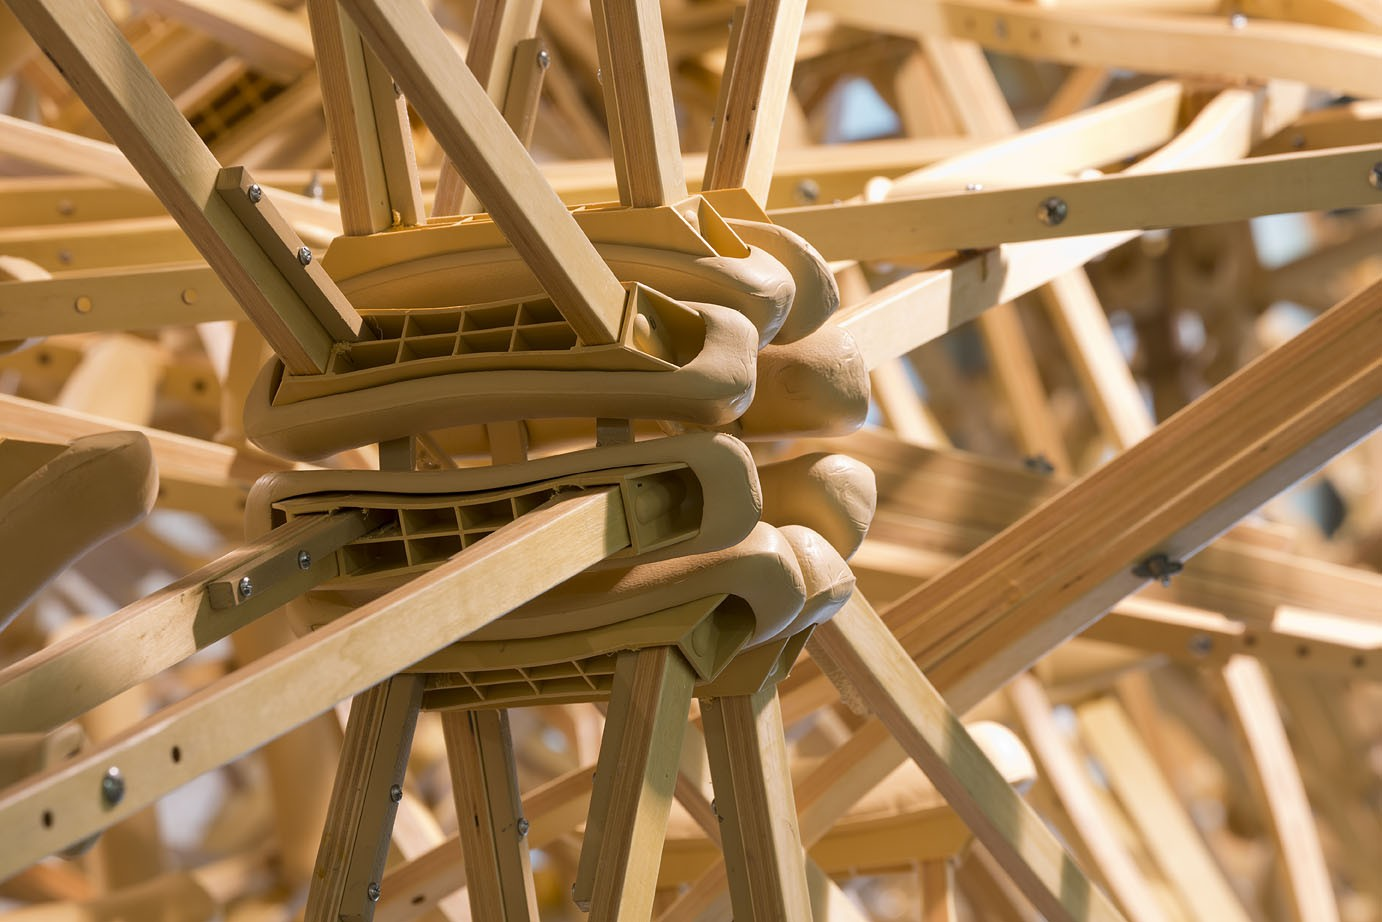 Wooden crutches combined into a spoke pattern